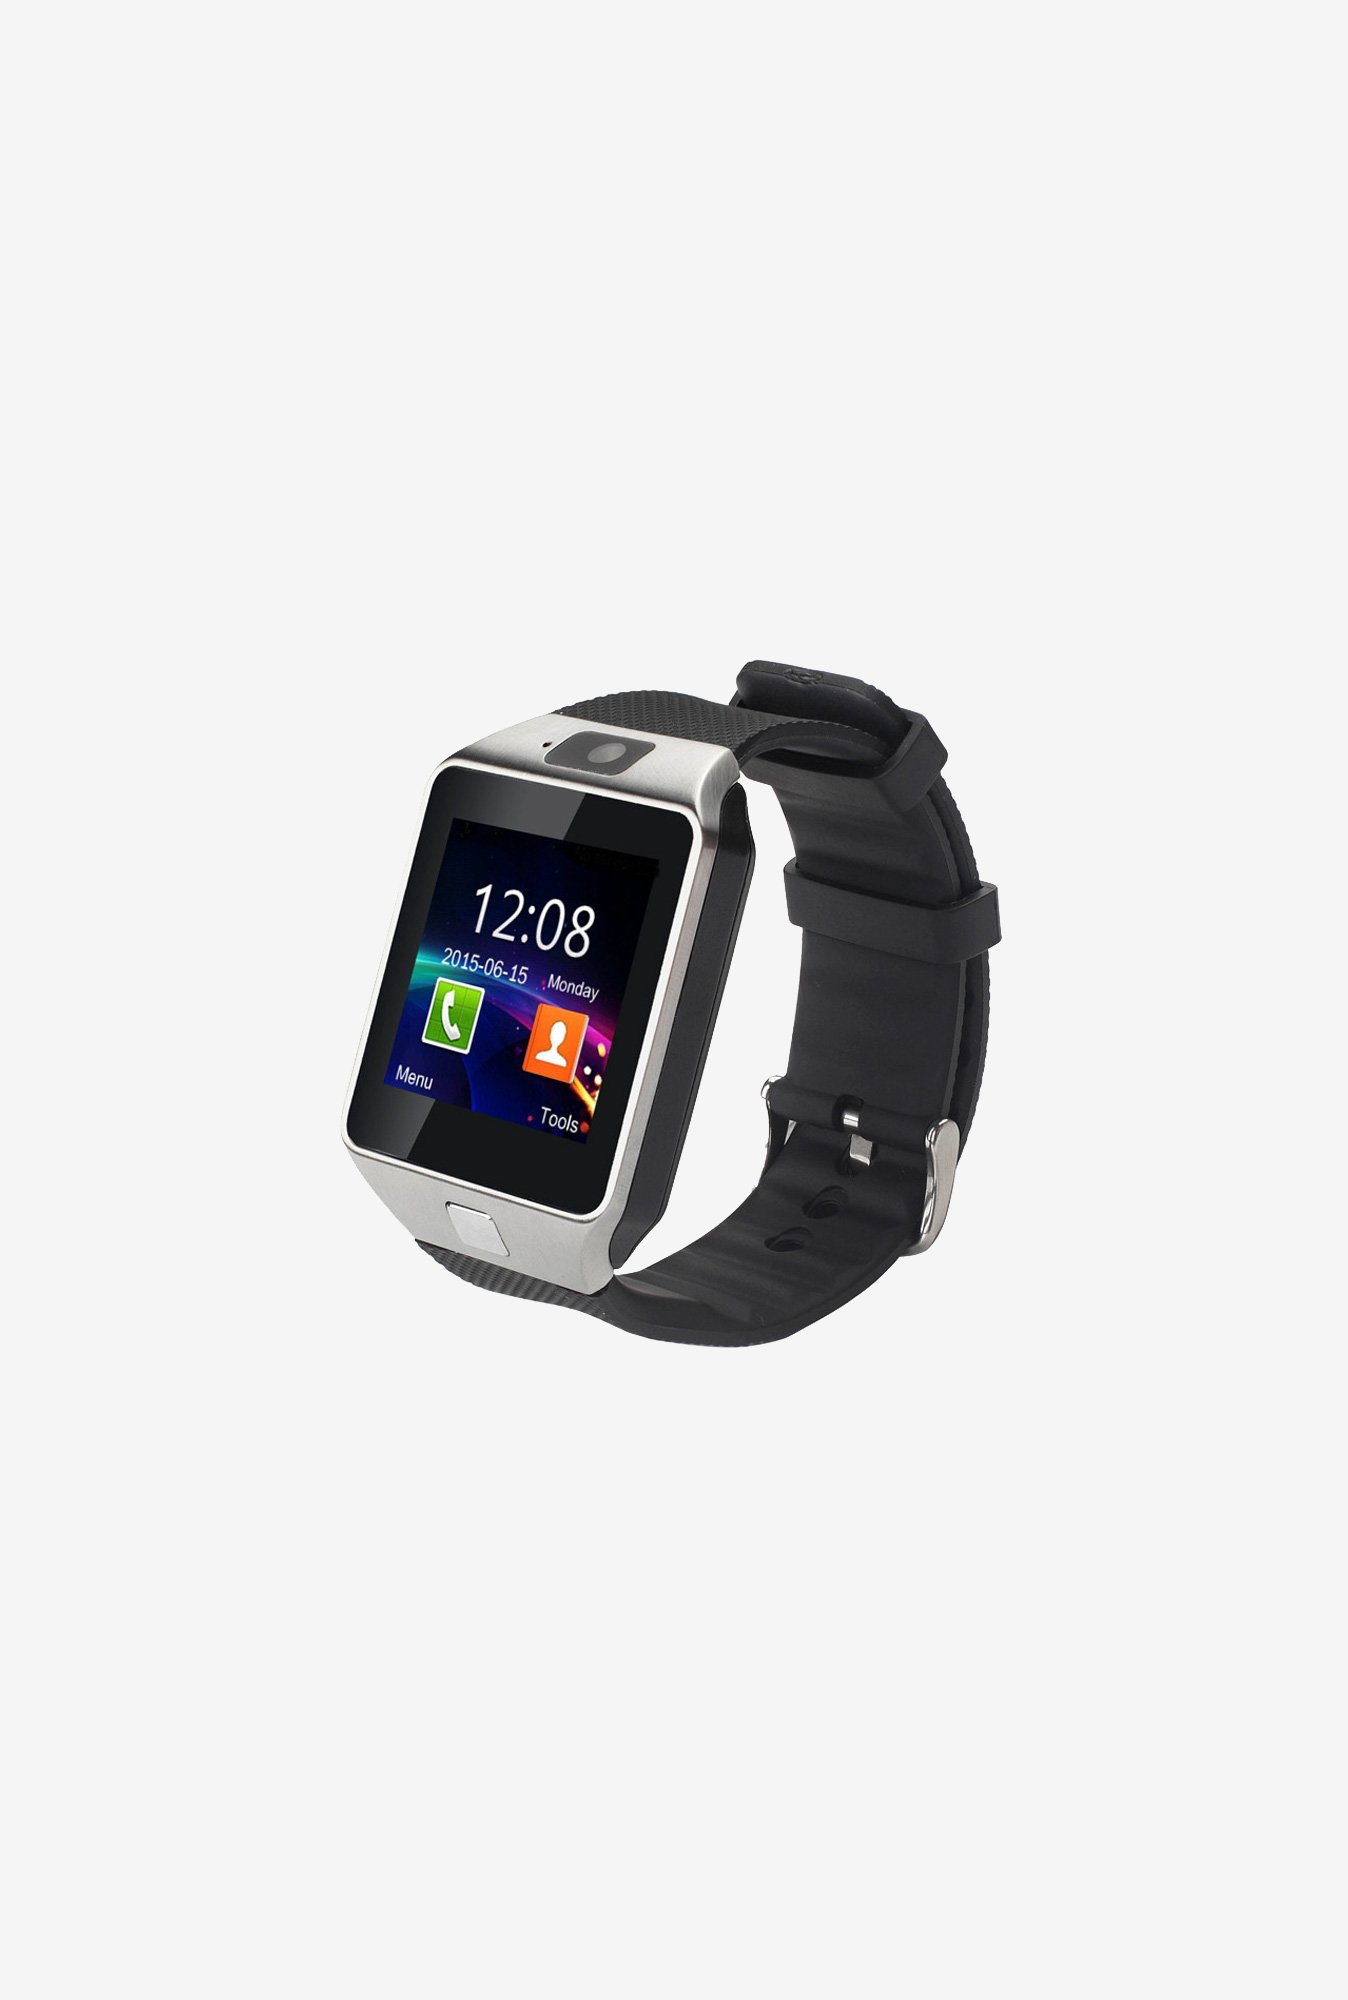 review watch helper phone android smart app mobile instal youtube and watches how to for bluetooth uwatch